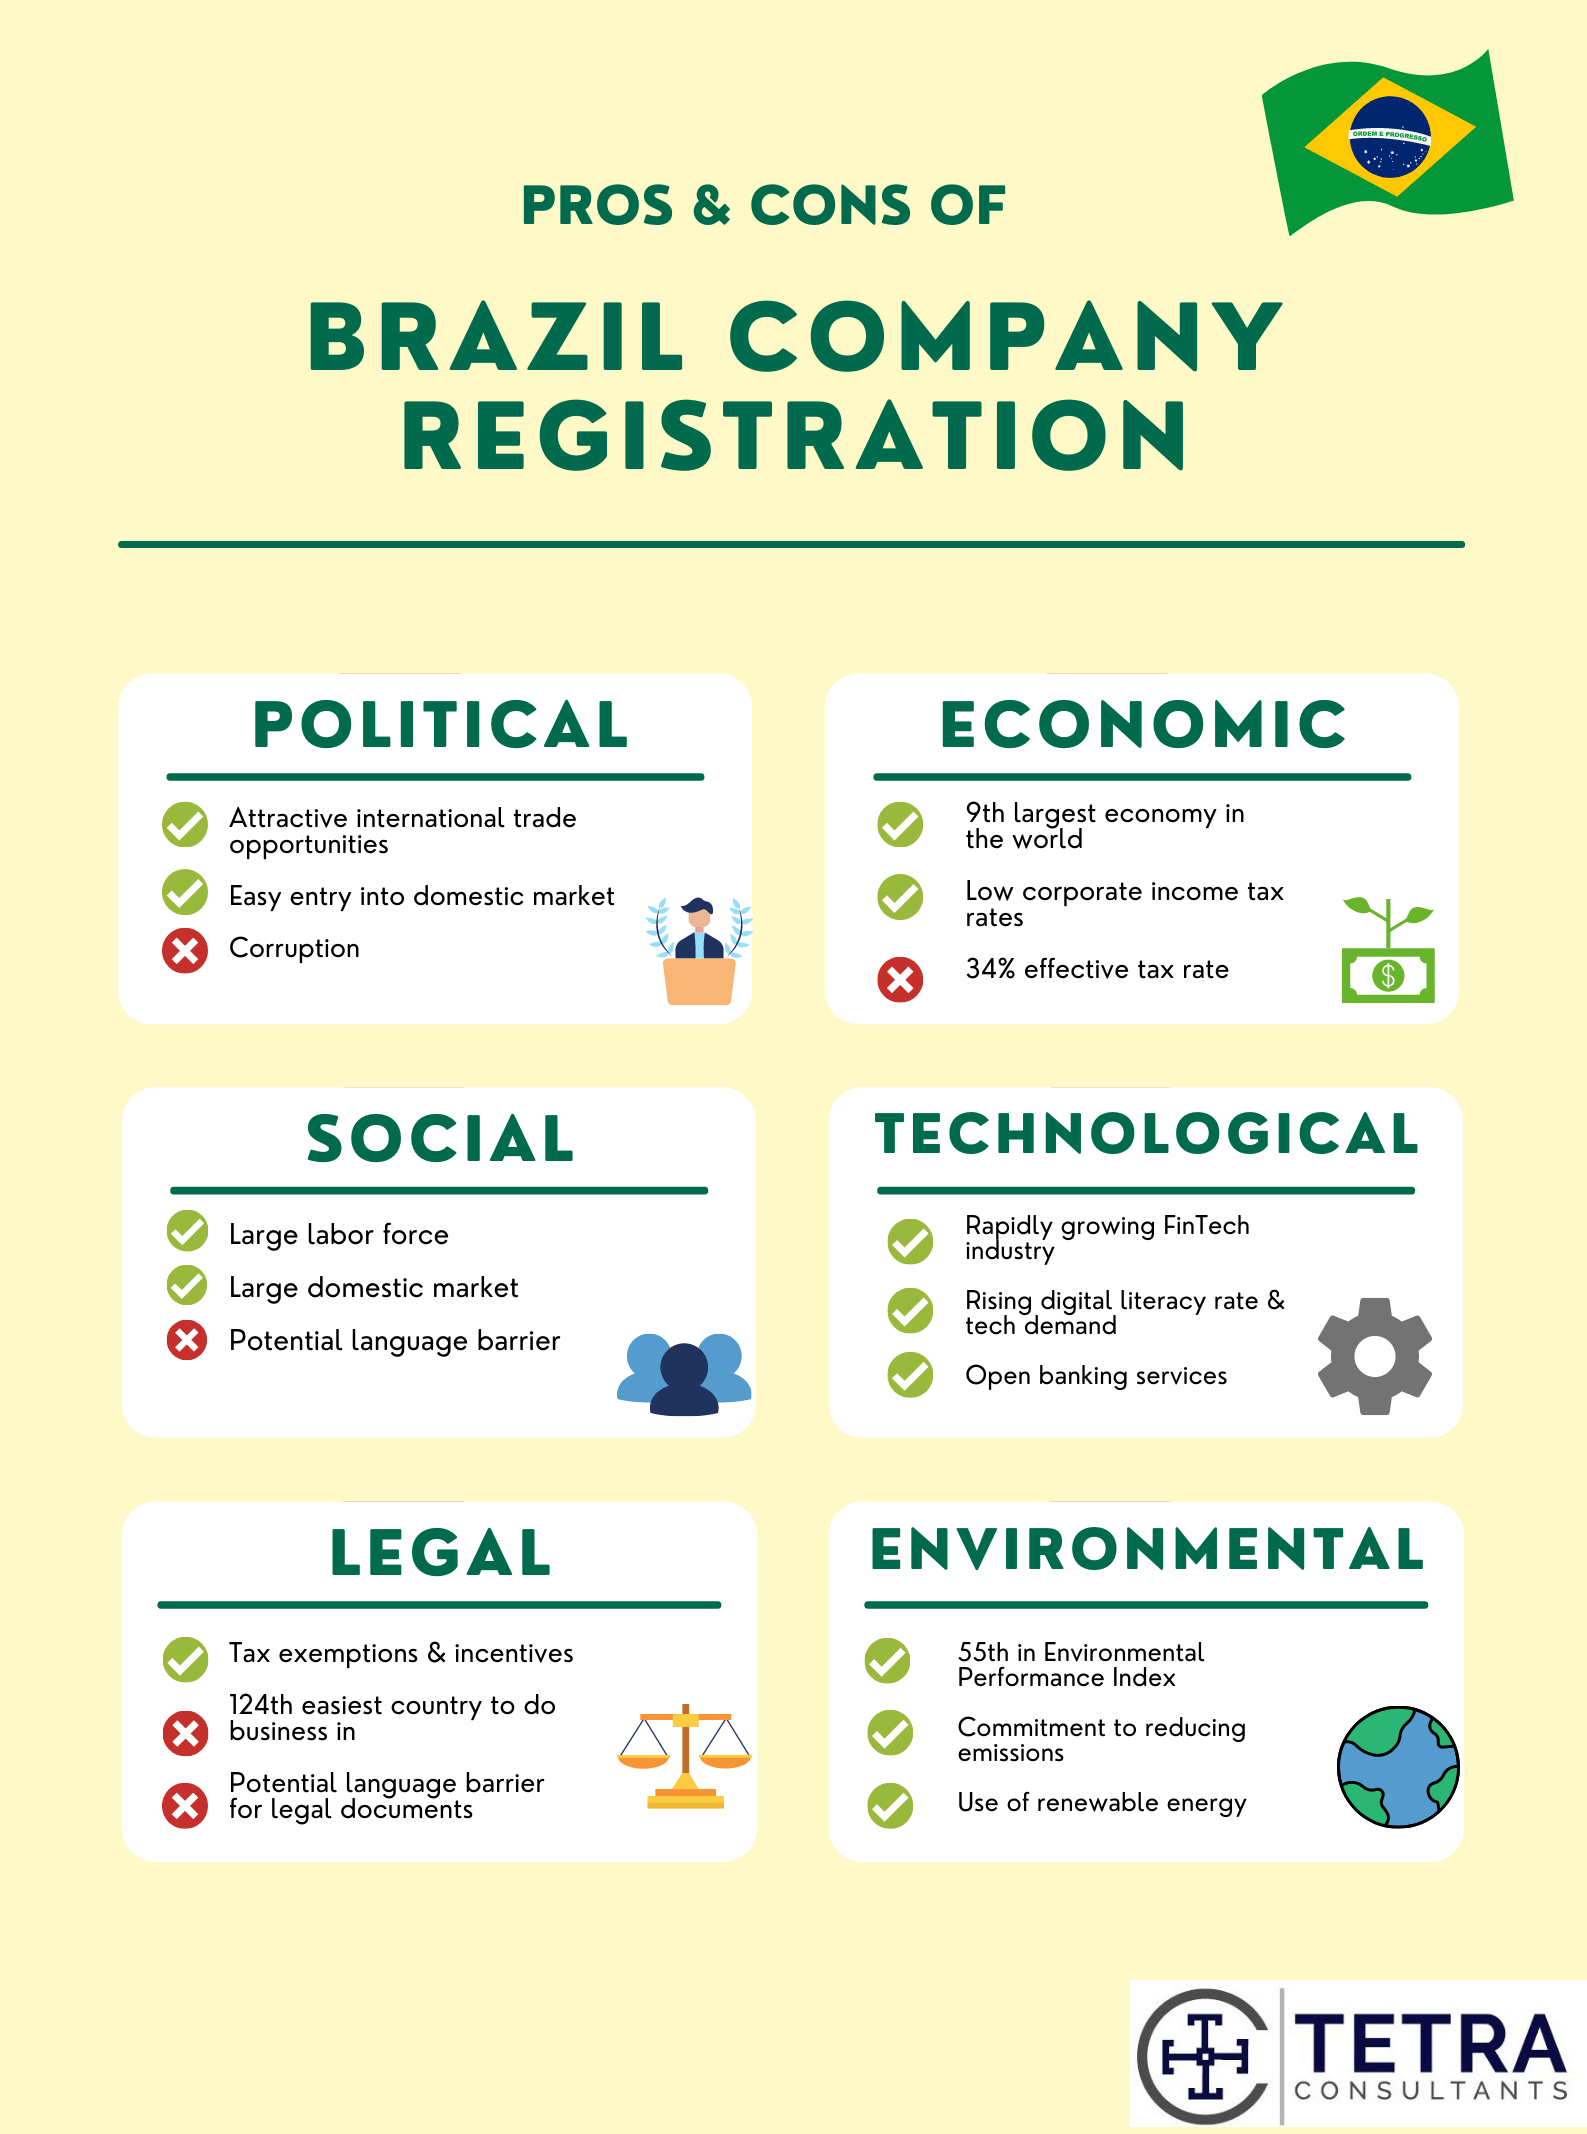 pros and cons of brazil company registration